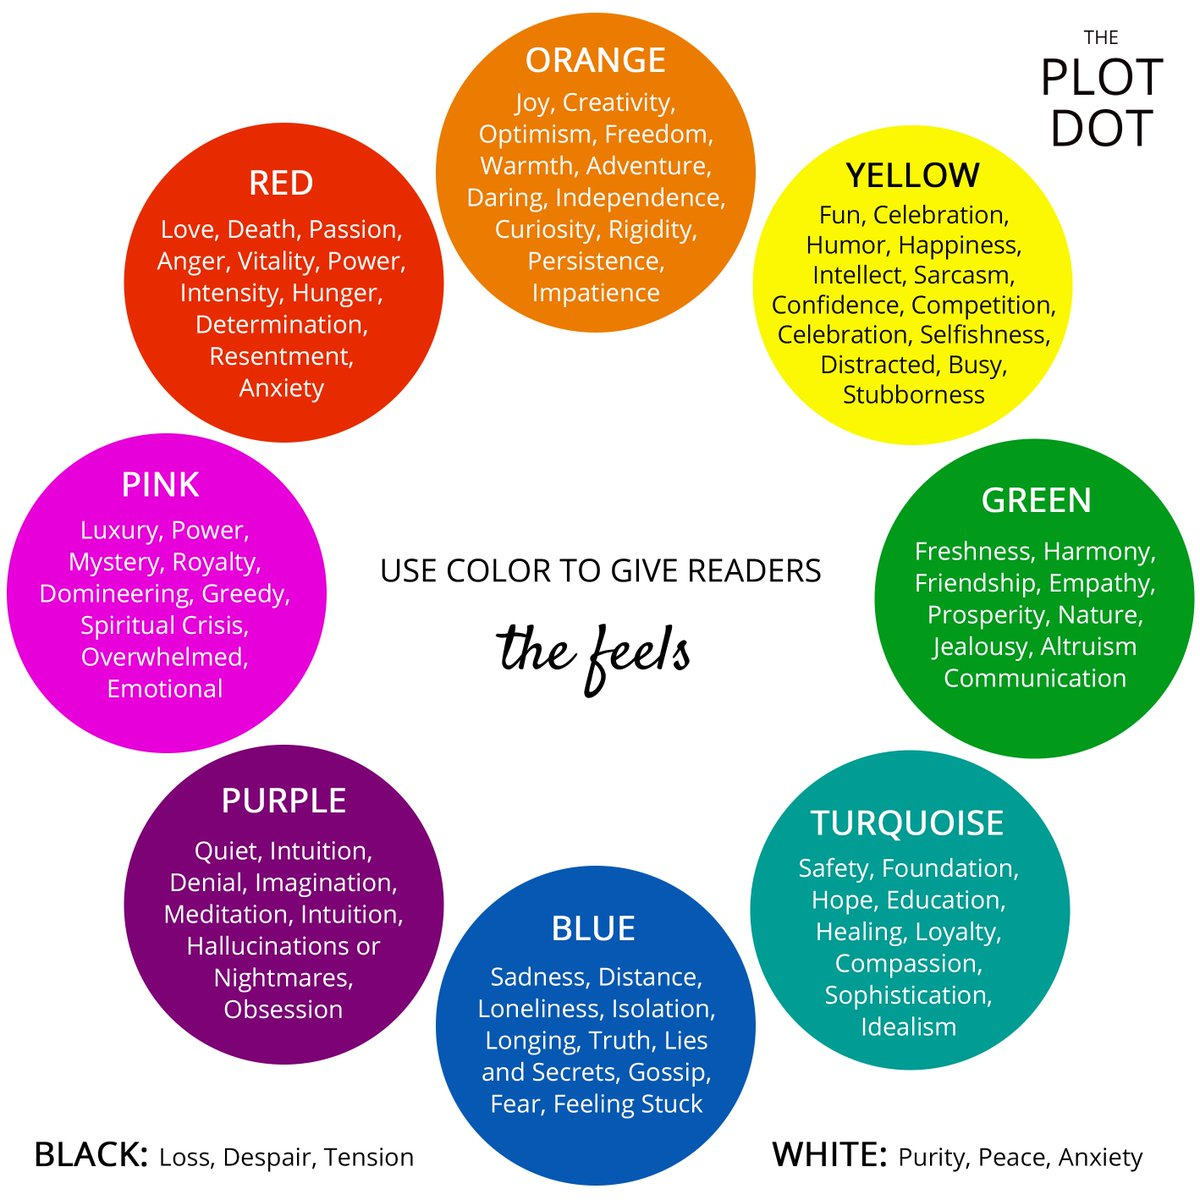 Derek Murphy On Twitter I Made A New Color Wheel For